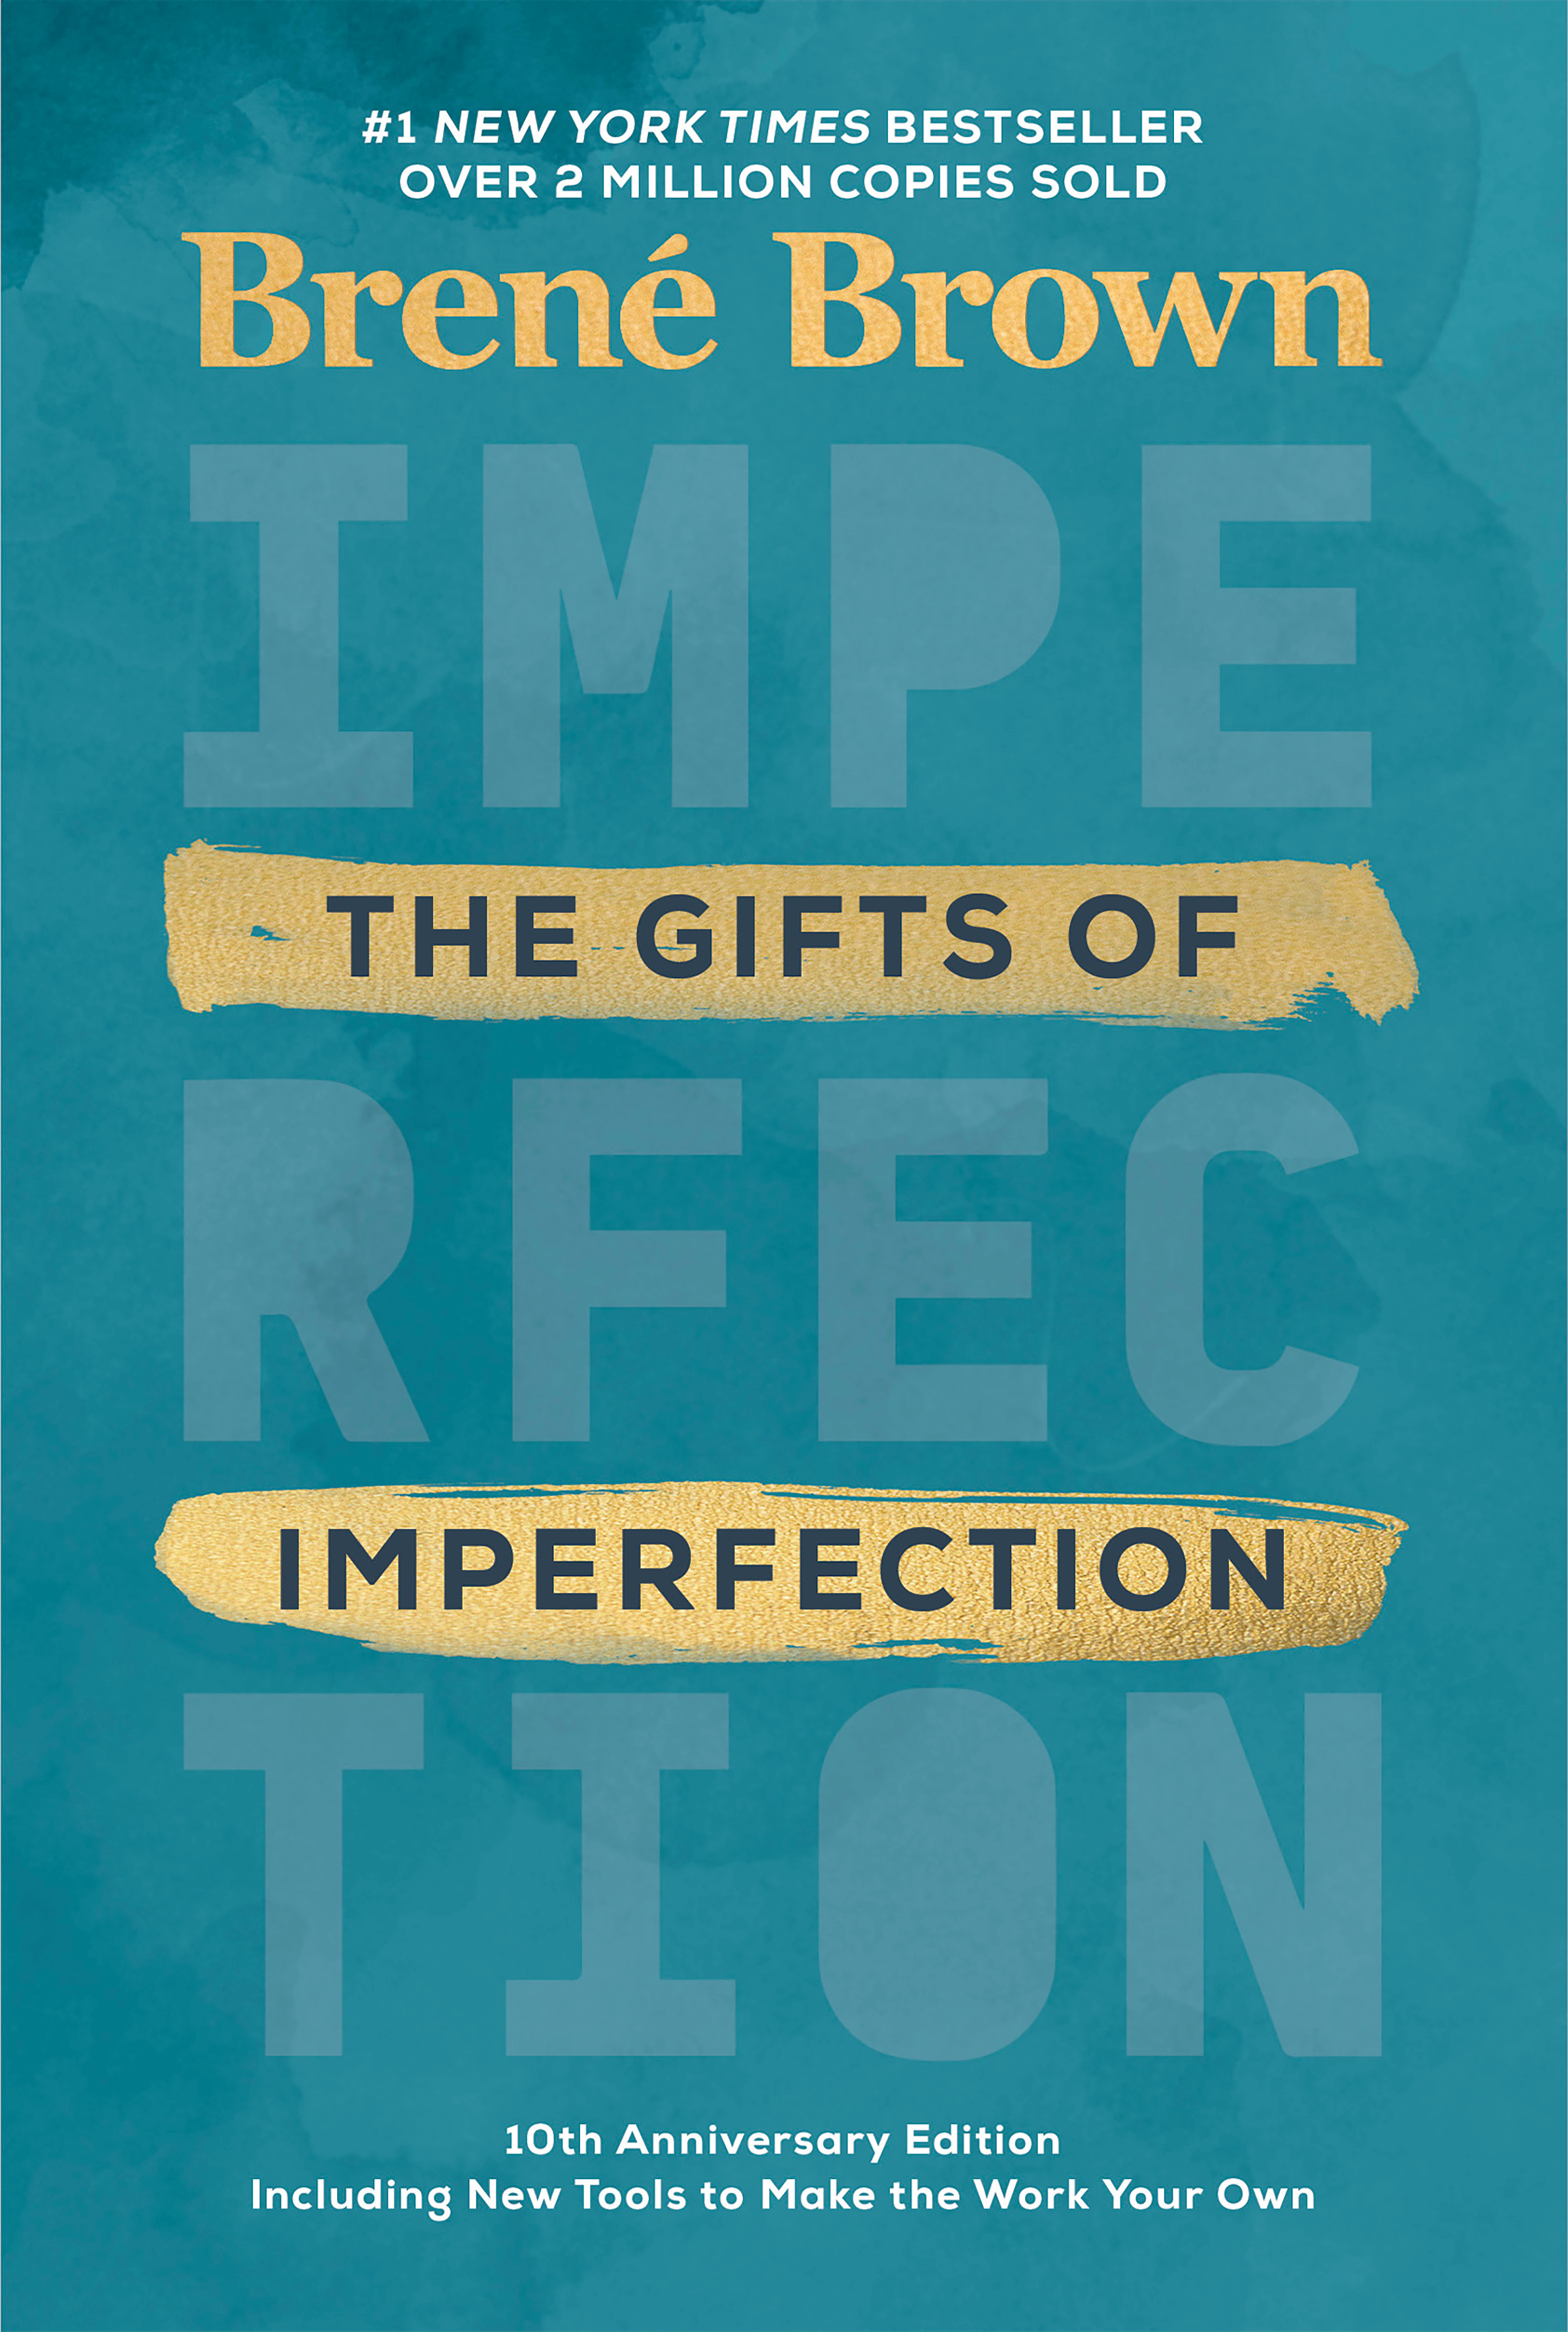 The Gifts of Imperfection: 10th Anniversary Edition : Features a new foreword and brand-new tools | Psychology & Self-Improvement